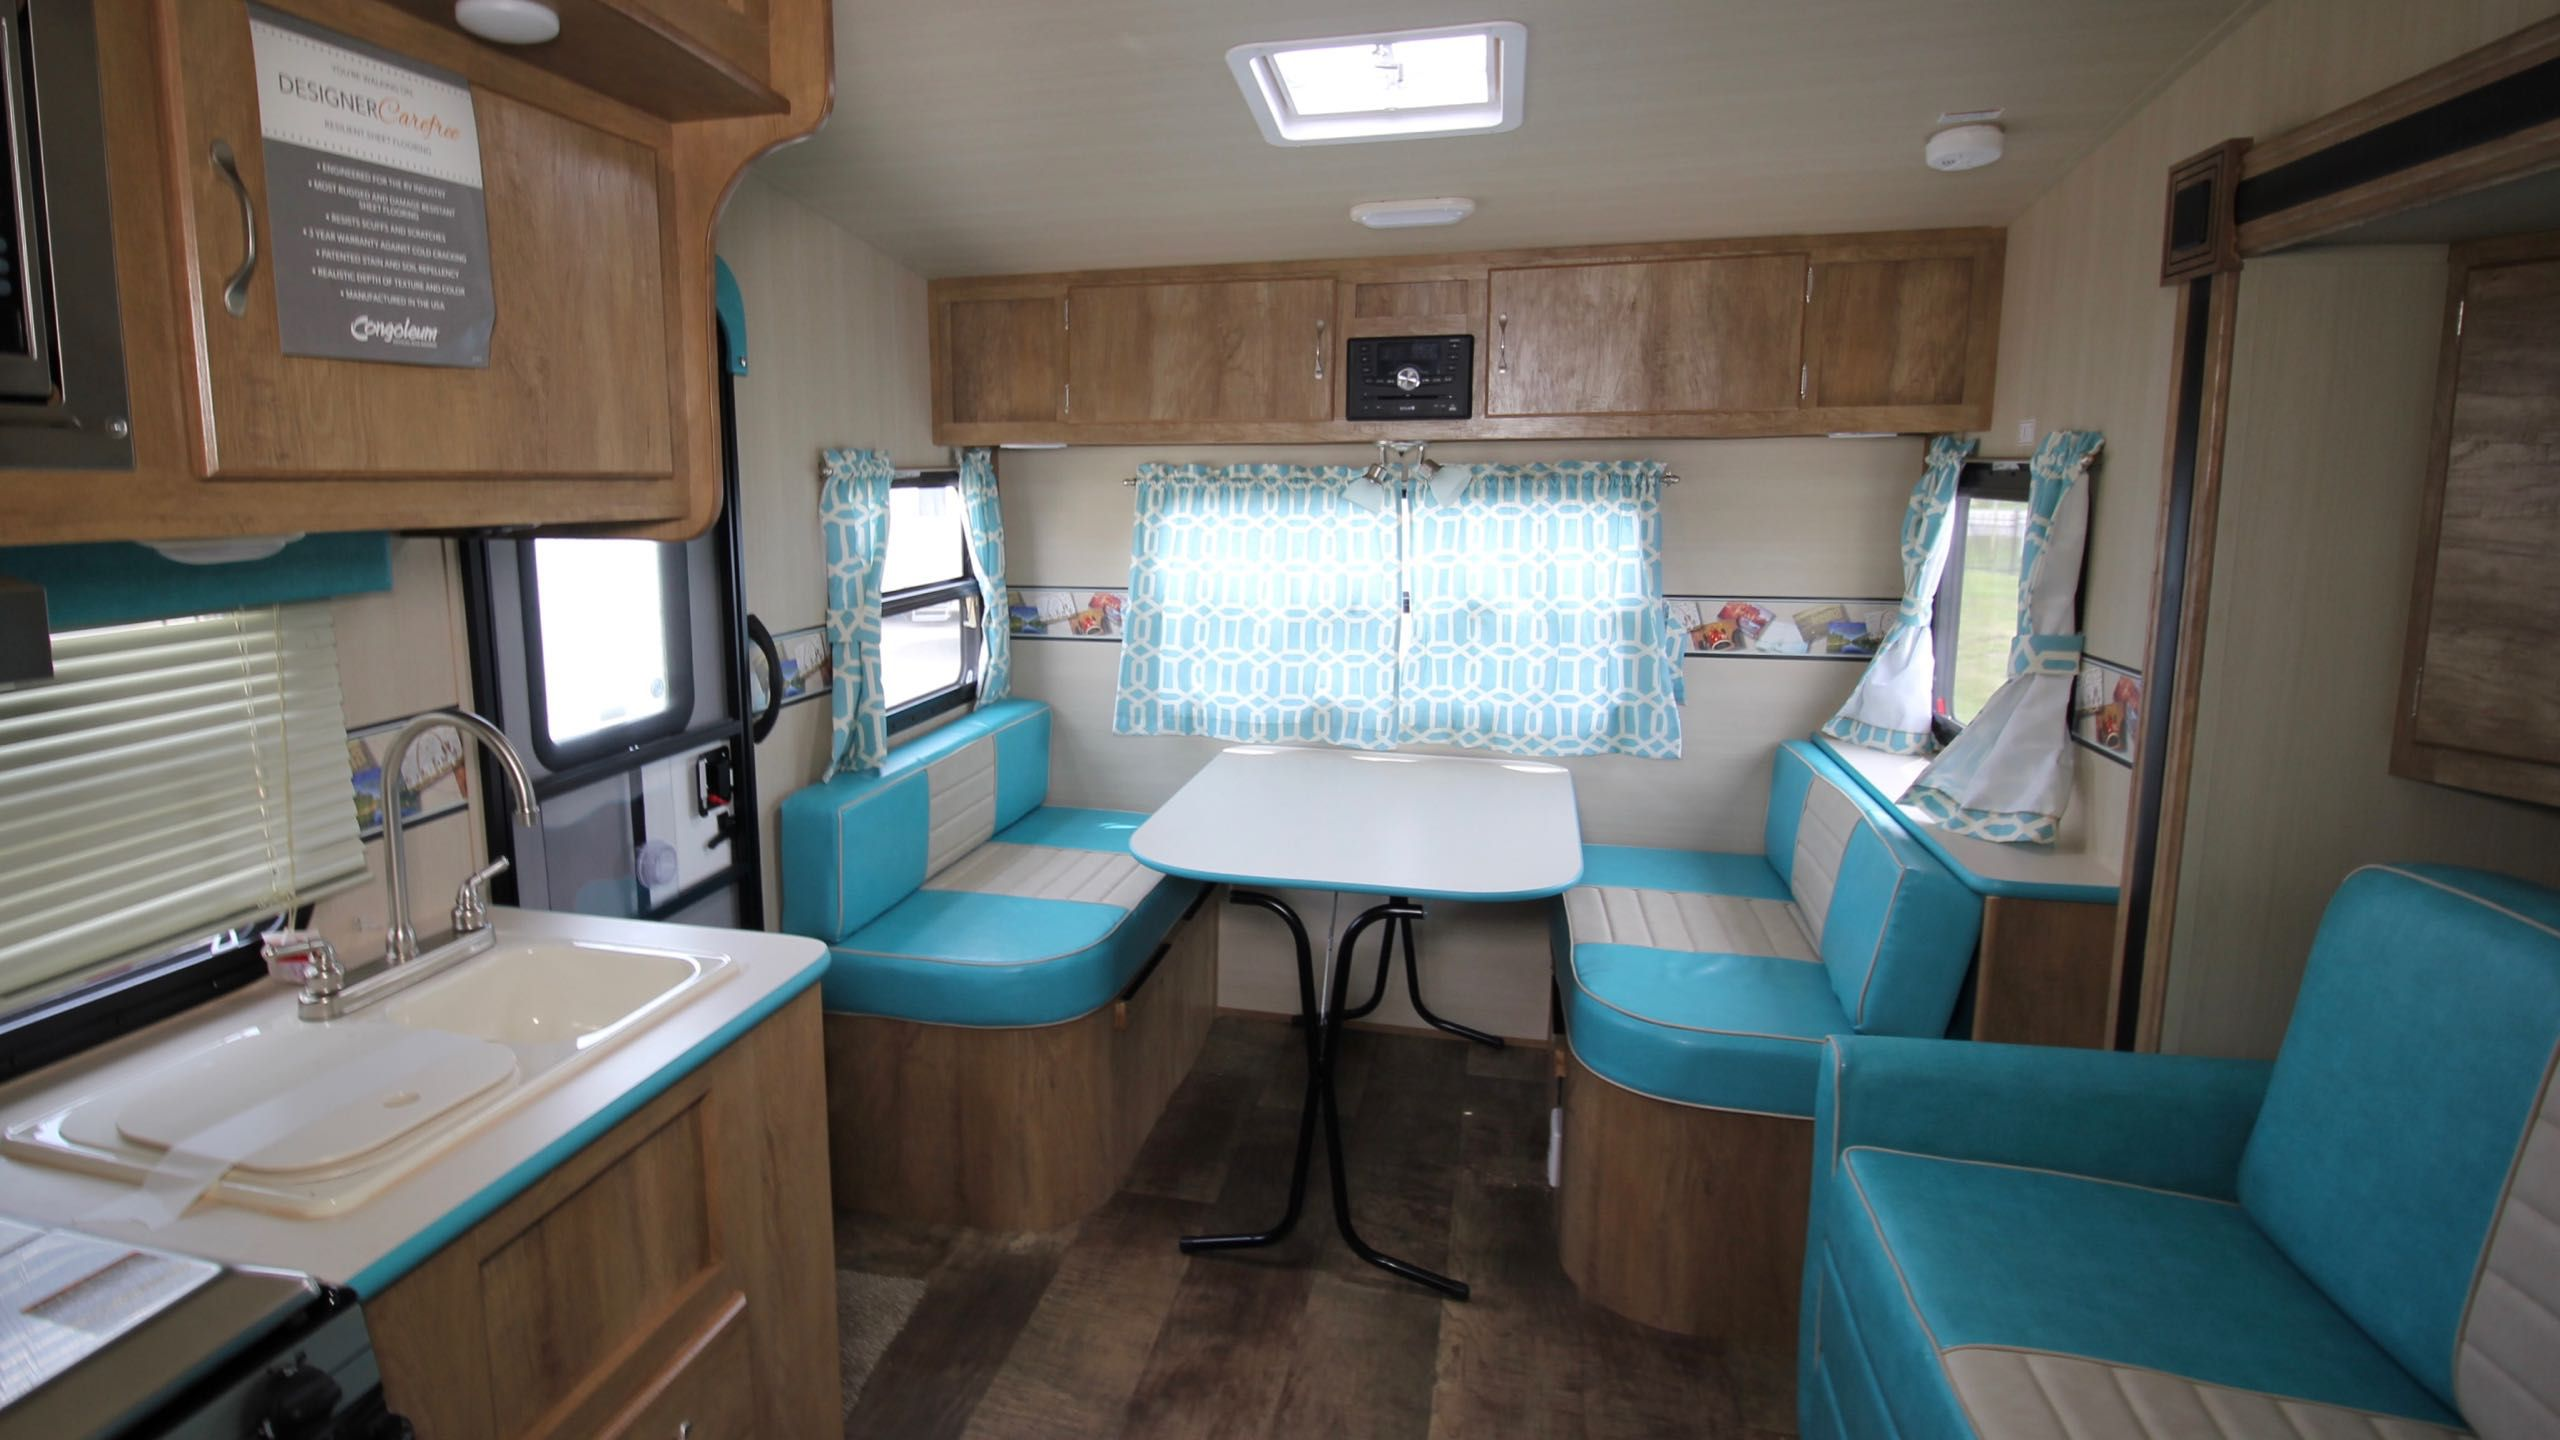 View Can-Am RV Centre RVs for sale | 61 - 70 of 146 units